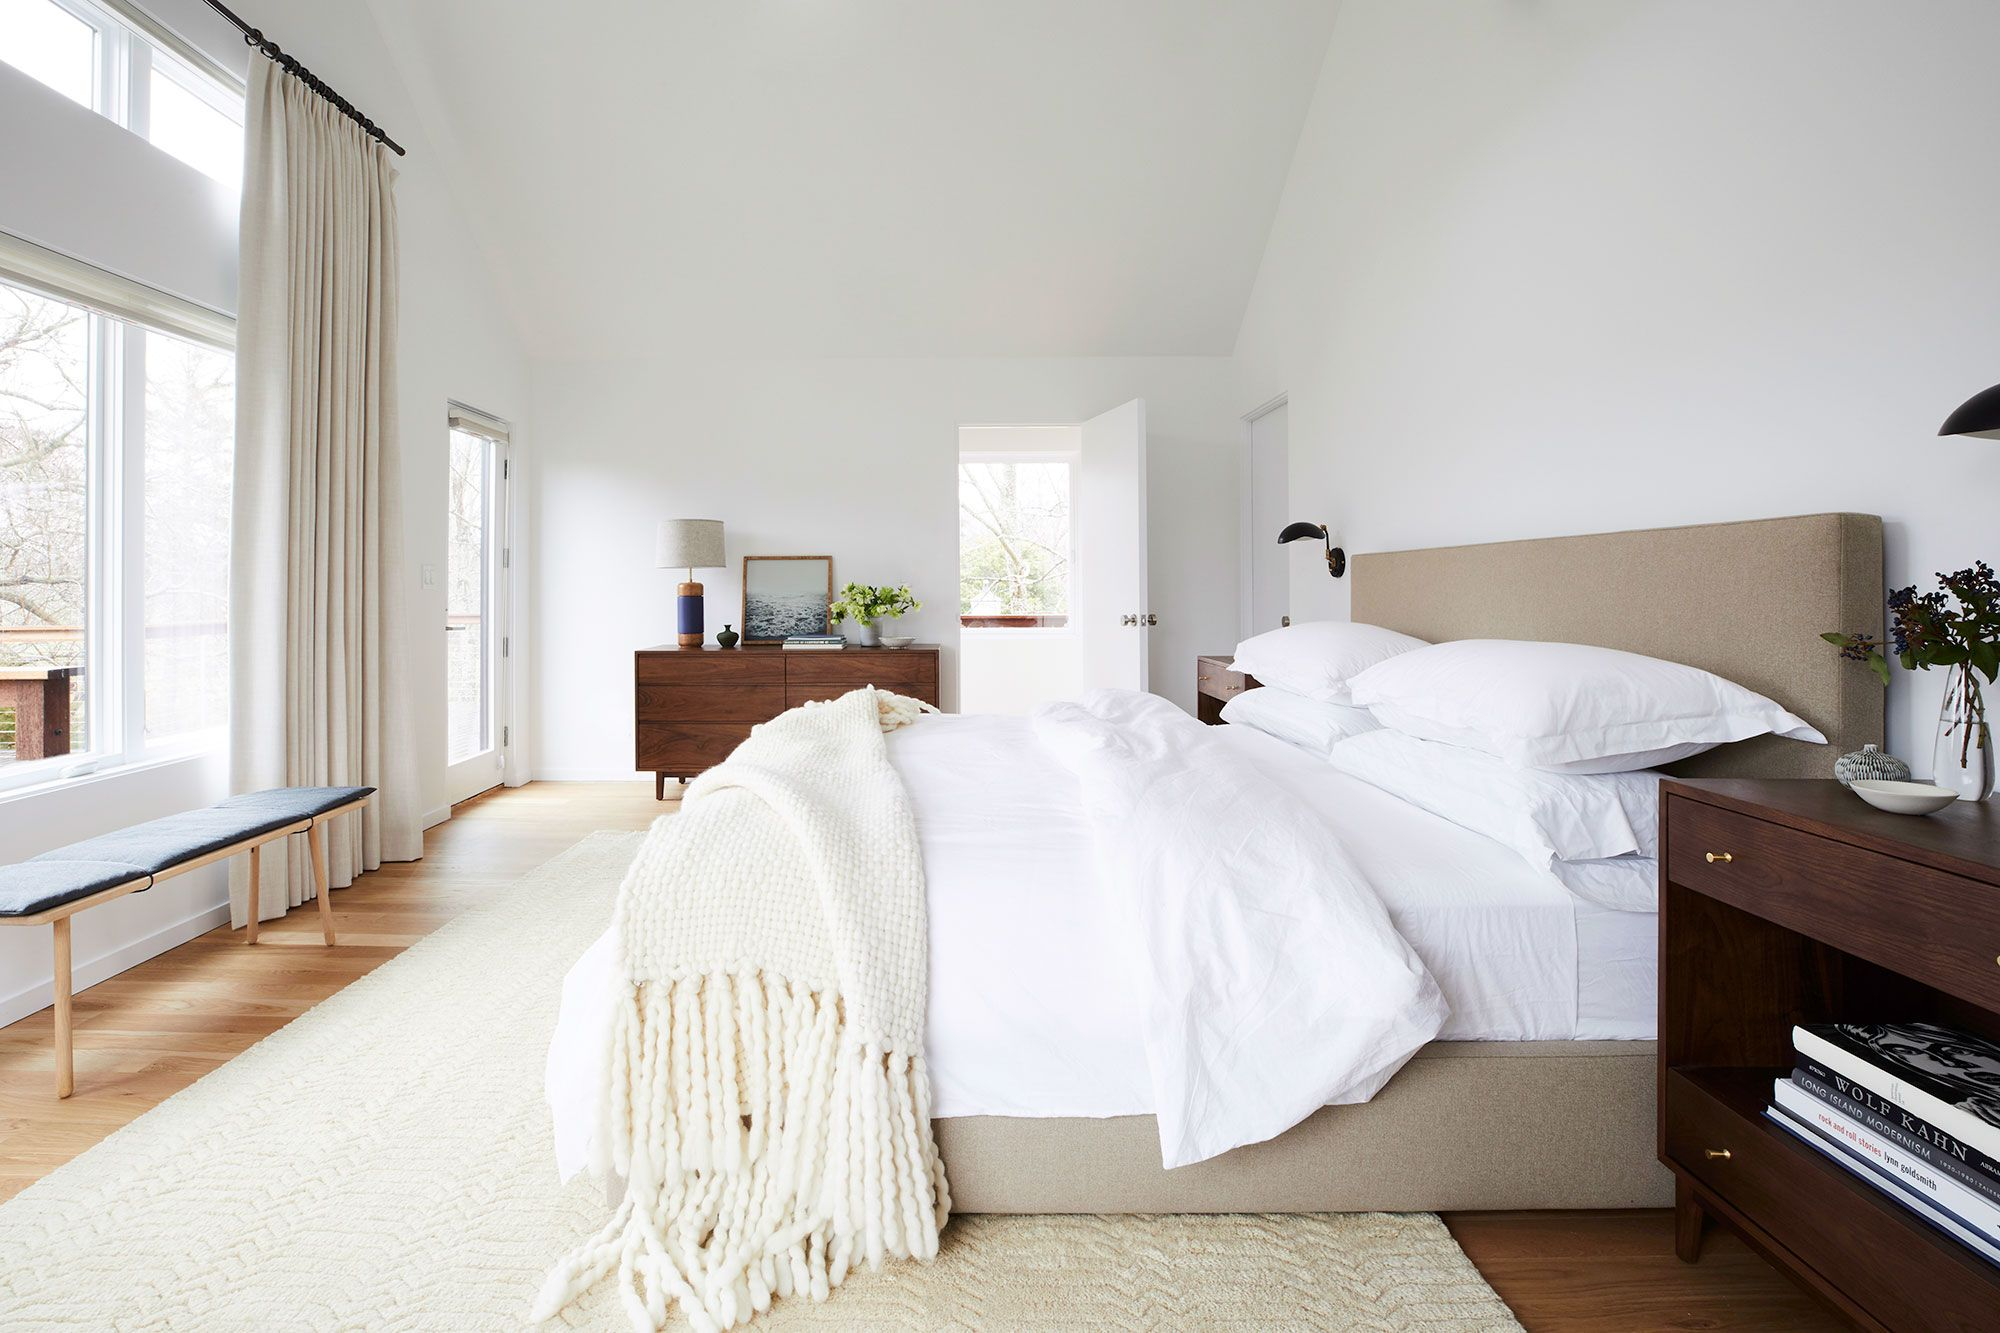 Bed accessories that you should have for a master bedroom